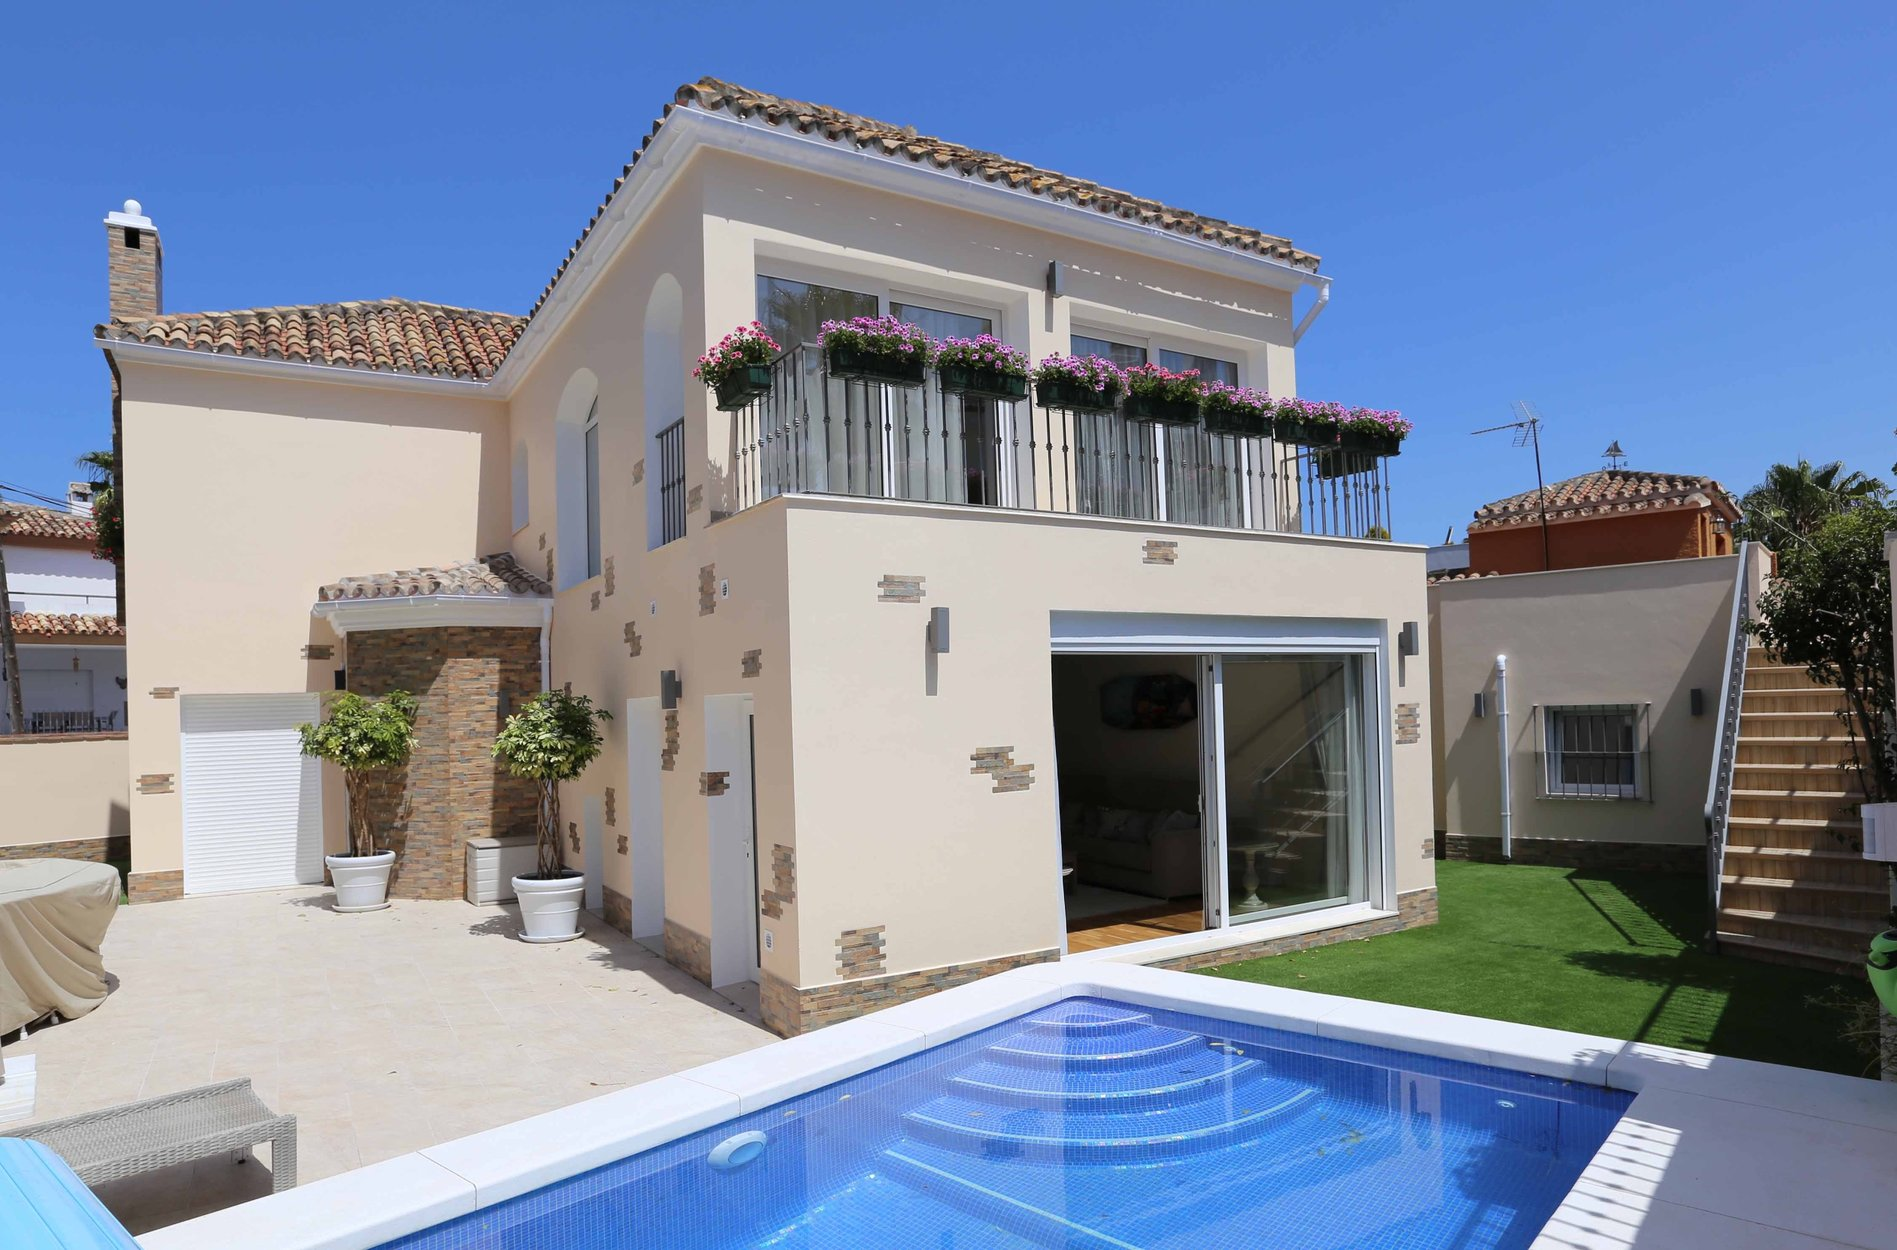 aaa3 bedroom Villa in San Pedro Alcantara | M277150